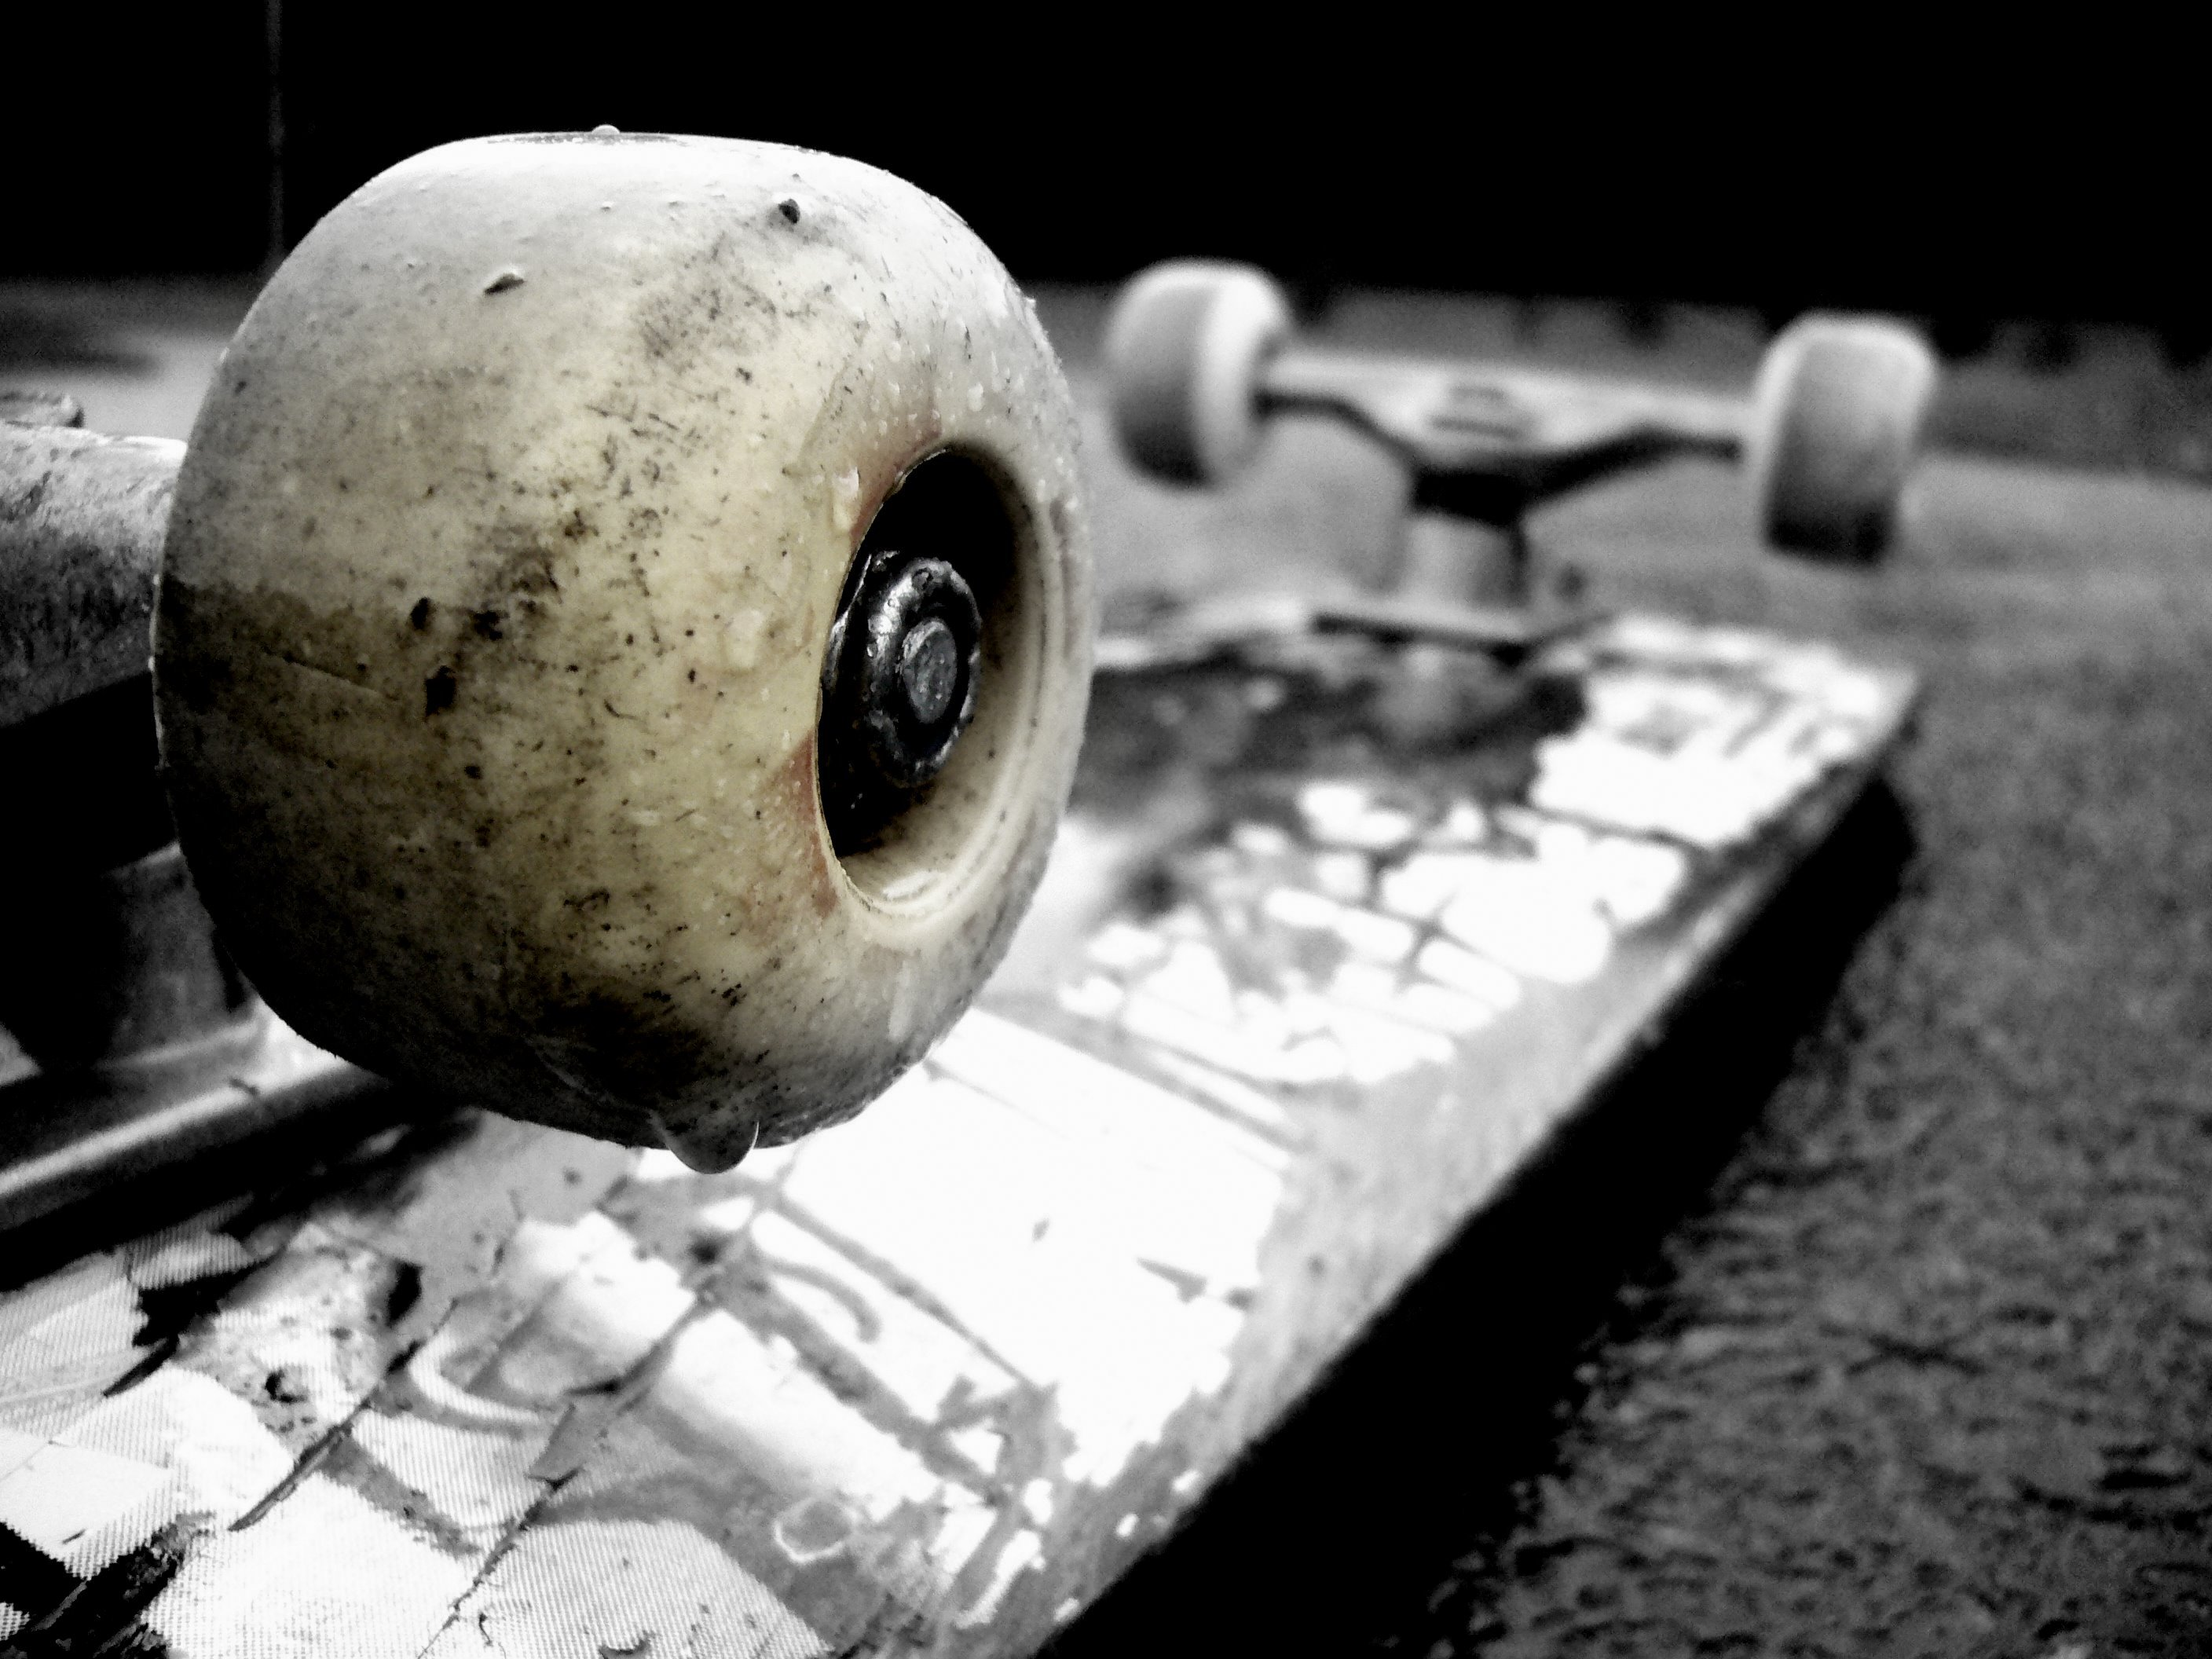 Skateboarding Desktop HD Wallpaper 3D amp Abstract Wallpapers 2816x2112